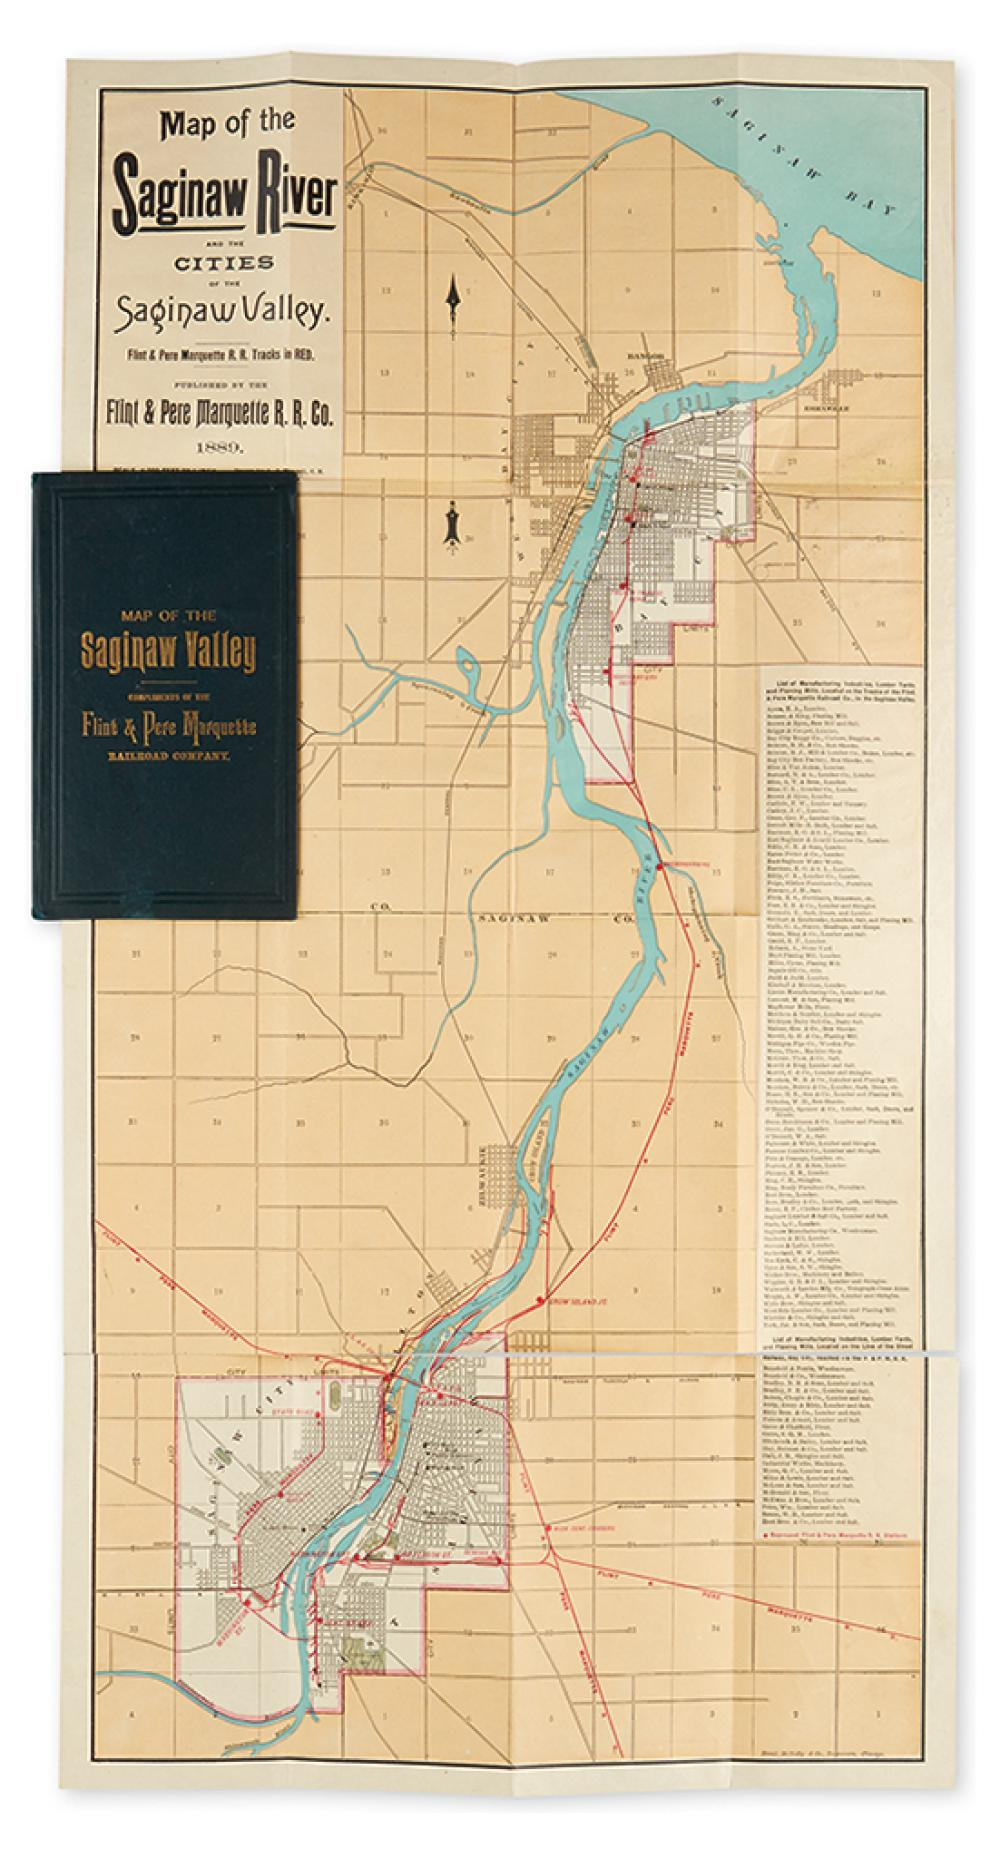 (MICHIGAN.) Flint & Pere Marquette Railroad Company. Map of the Saginaw River and the Cities of the Saginaw Valley.